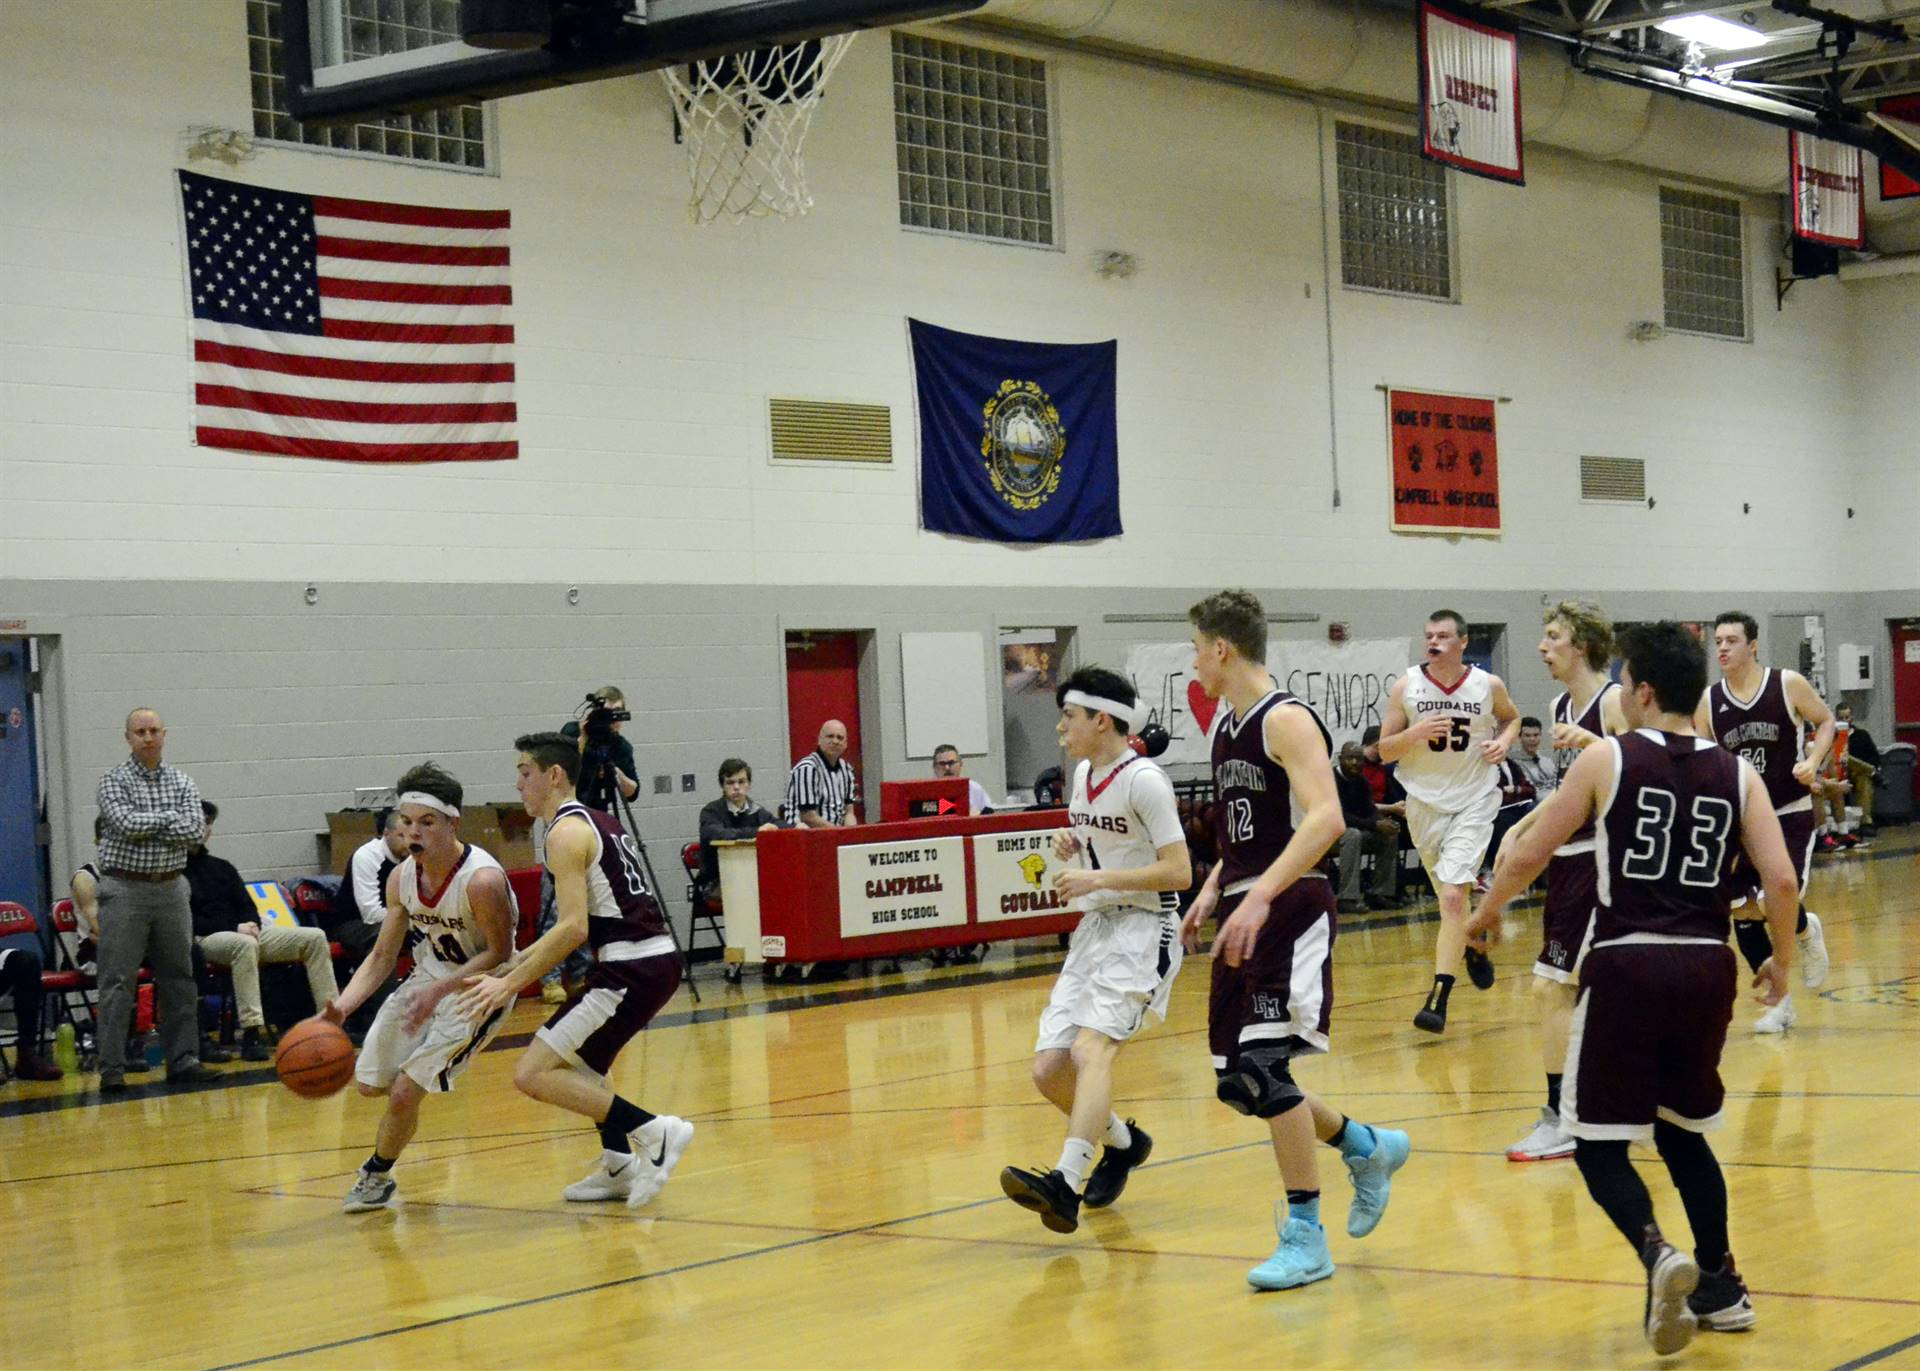 Boys basketball keeping the ball in their control